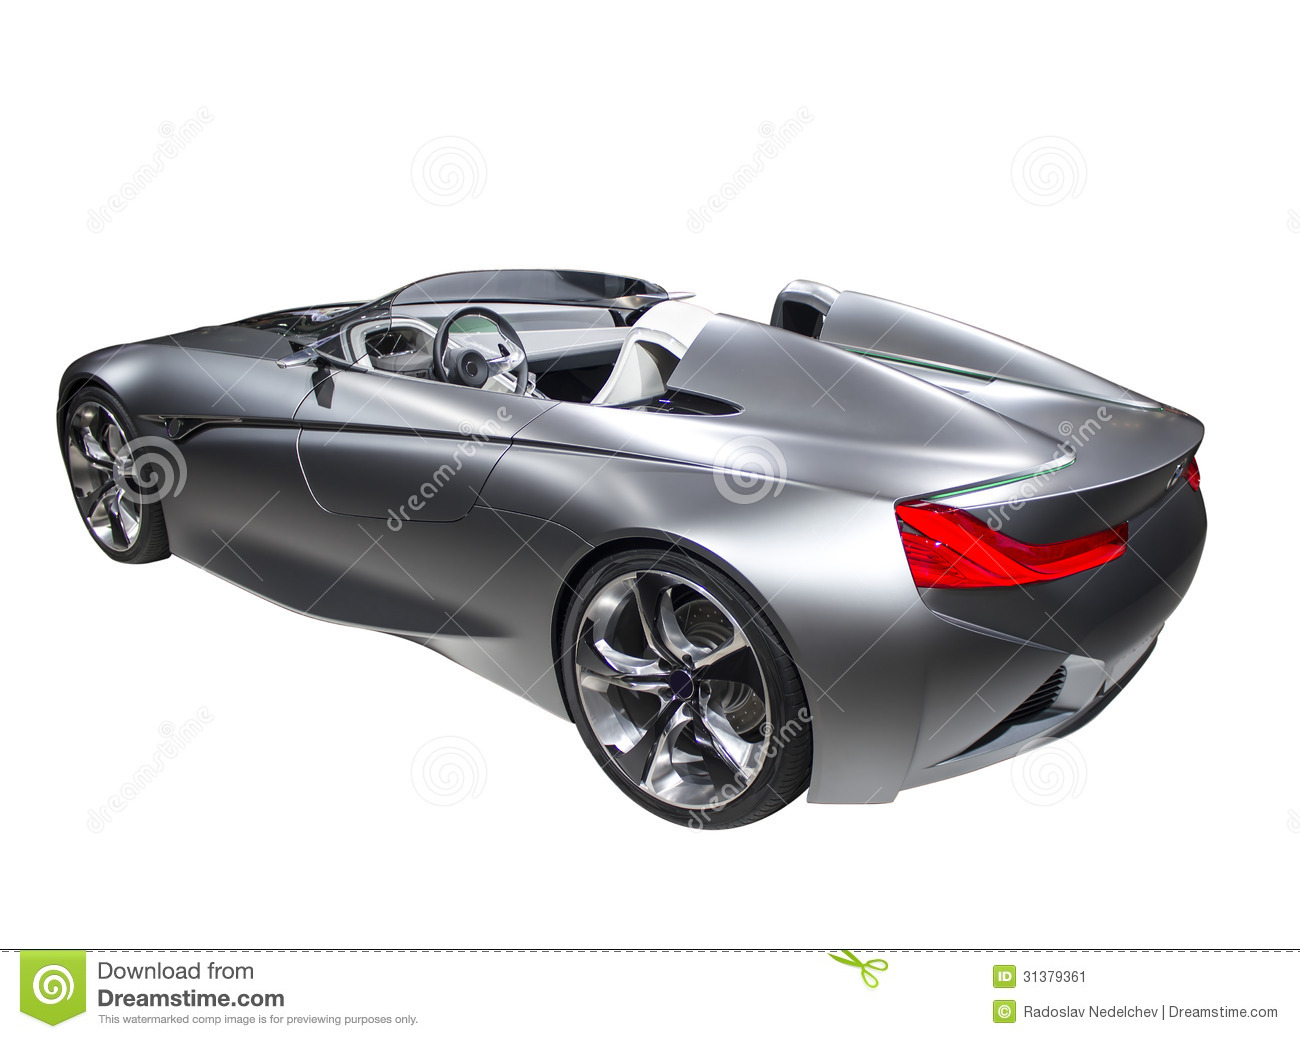 New model fast sport car silver color isolated on white background.